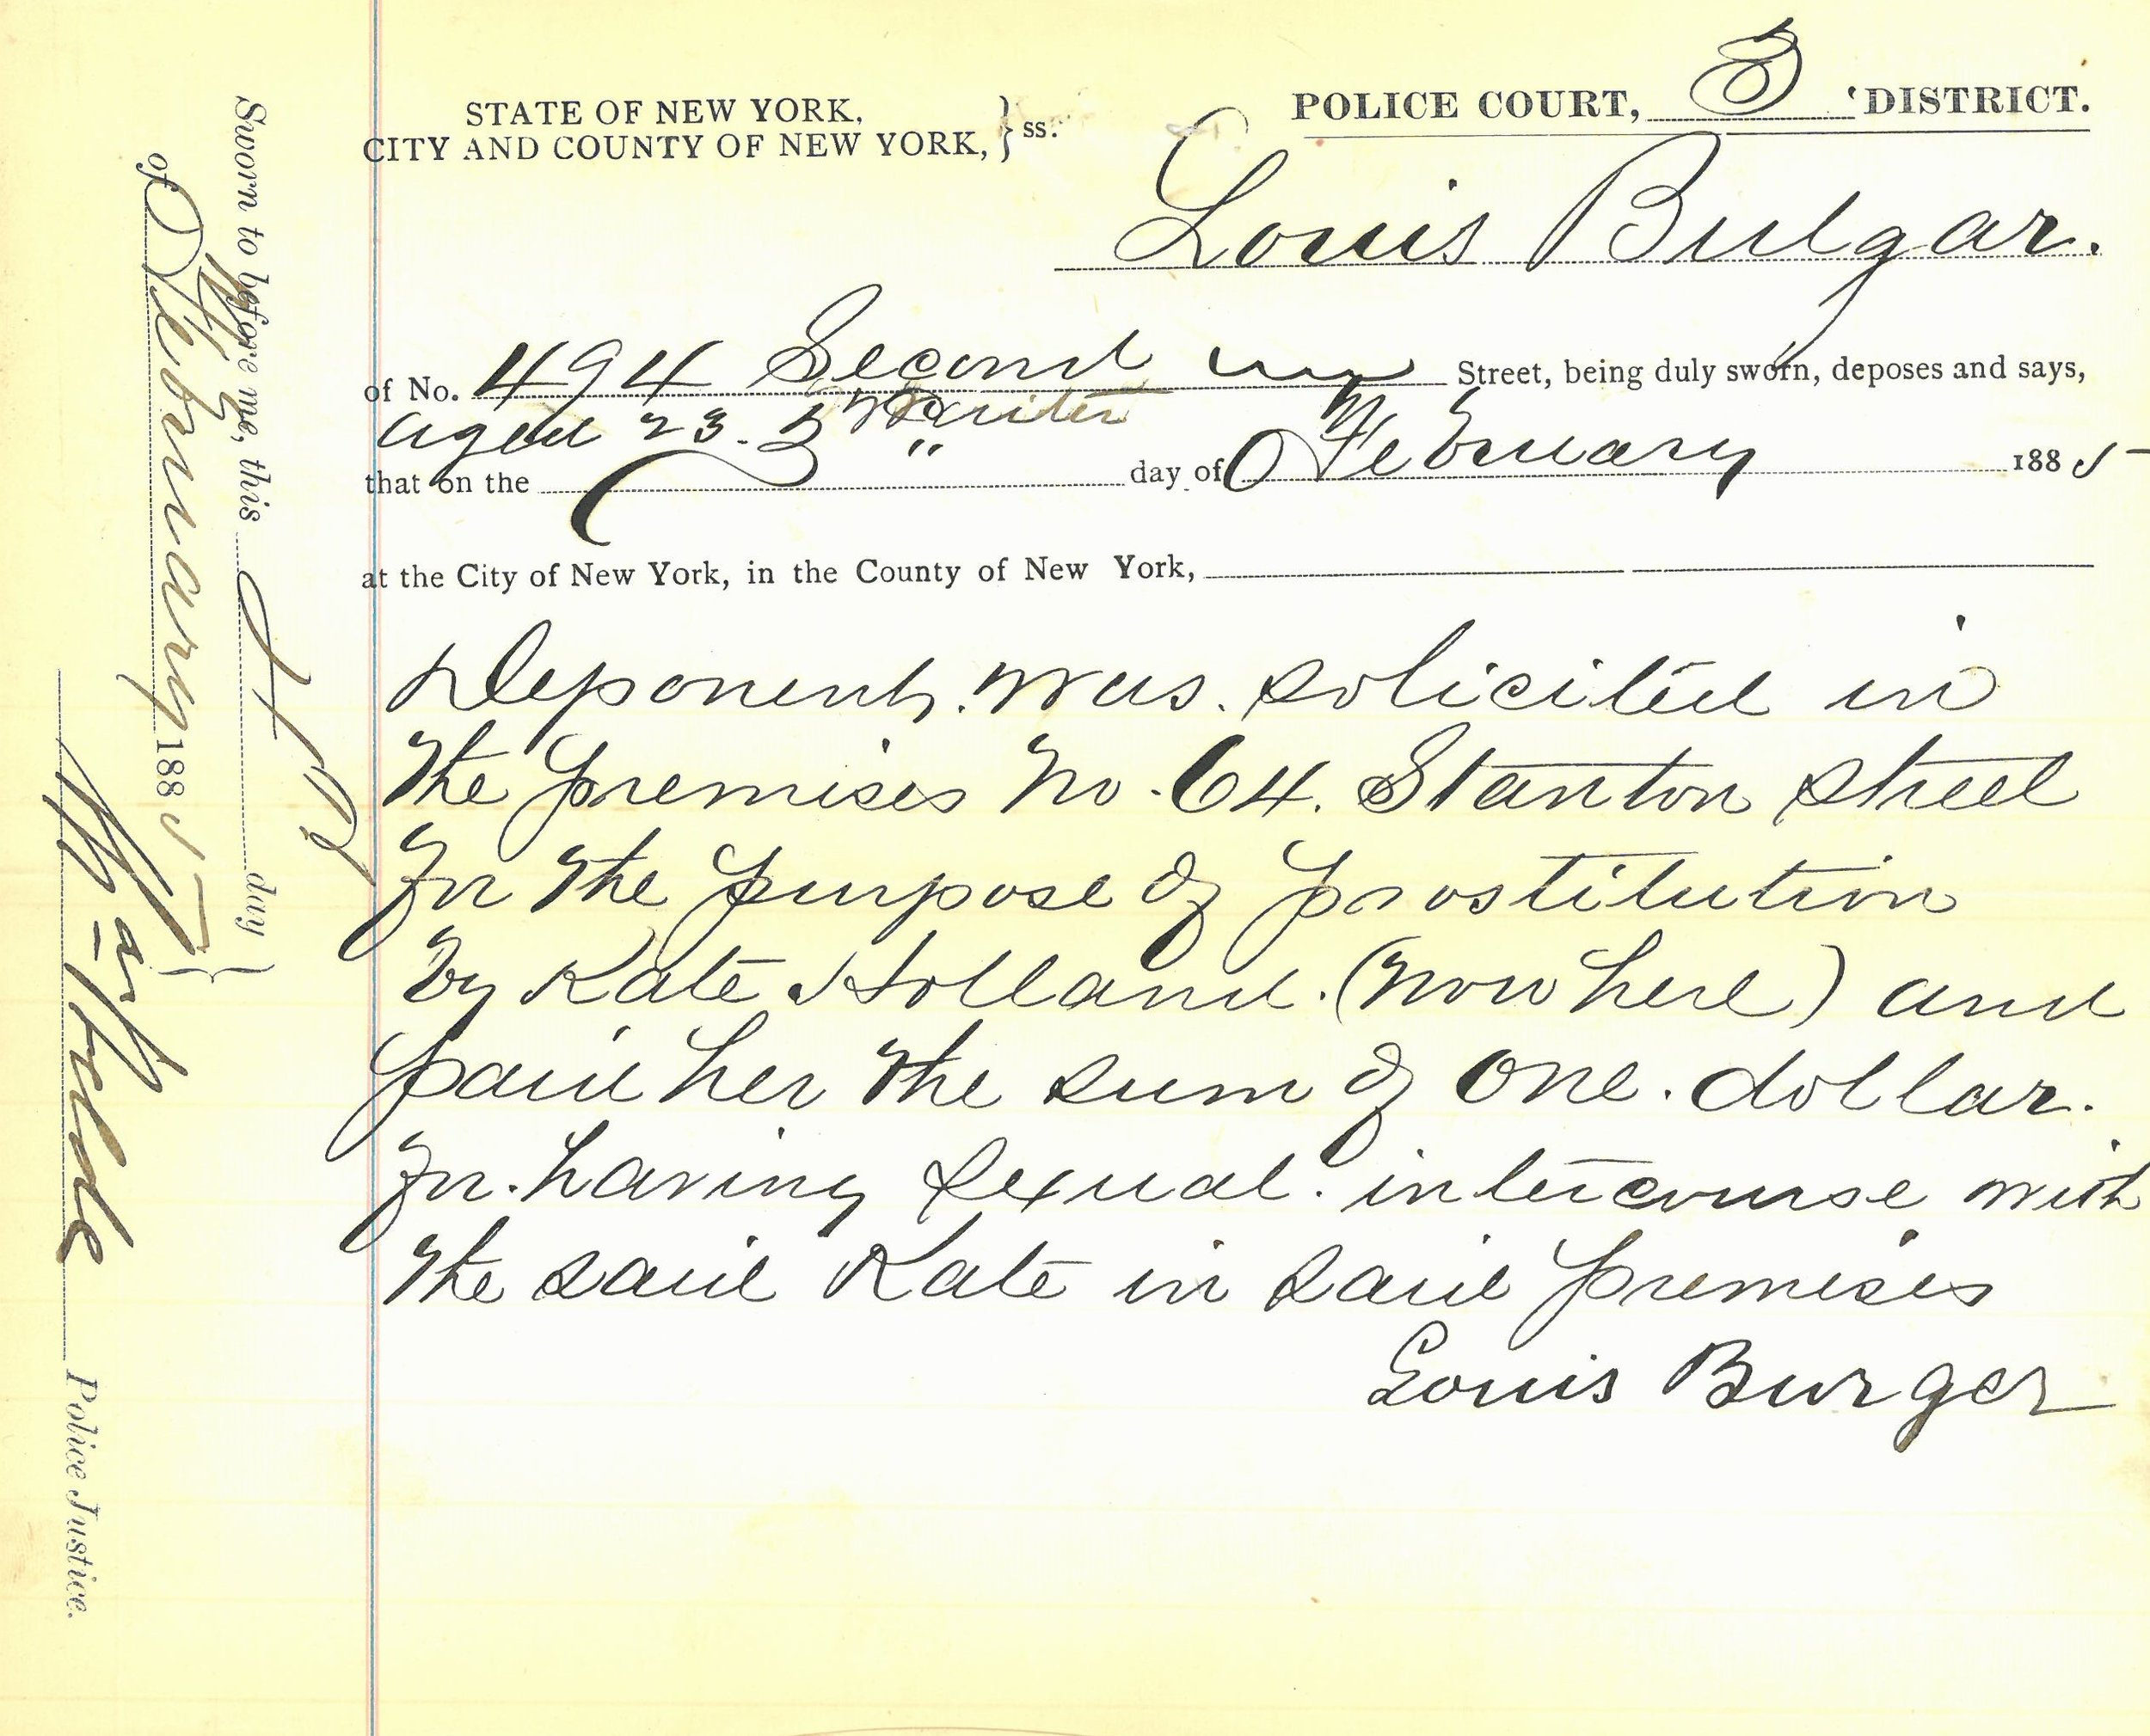 "On February 11, 1885, a grand jury indicted ""Rose"" Hertz for ""Keeping a Bawdy House."" The felony prosecution case file includes the Manhattan 3rd District Police Court complaint where one Louis Burger alleges that he ""… .was solicited in the premises no 64 Stanton Street for the purpose of prostitution… . "" The file also includes a letter from Police Captain Anthony J. Allaire, stating that to his knowledge Rose Hertz had moved away from the Precinct. In consequence, the Assistant District Attorney in charge of the case recommended that the indictment should be dismissed since the ""nuisance"" had been abated. New York City Court of General Sessions Felony Indictment Files, 1879-1894. NYC Municipal Archives"